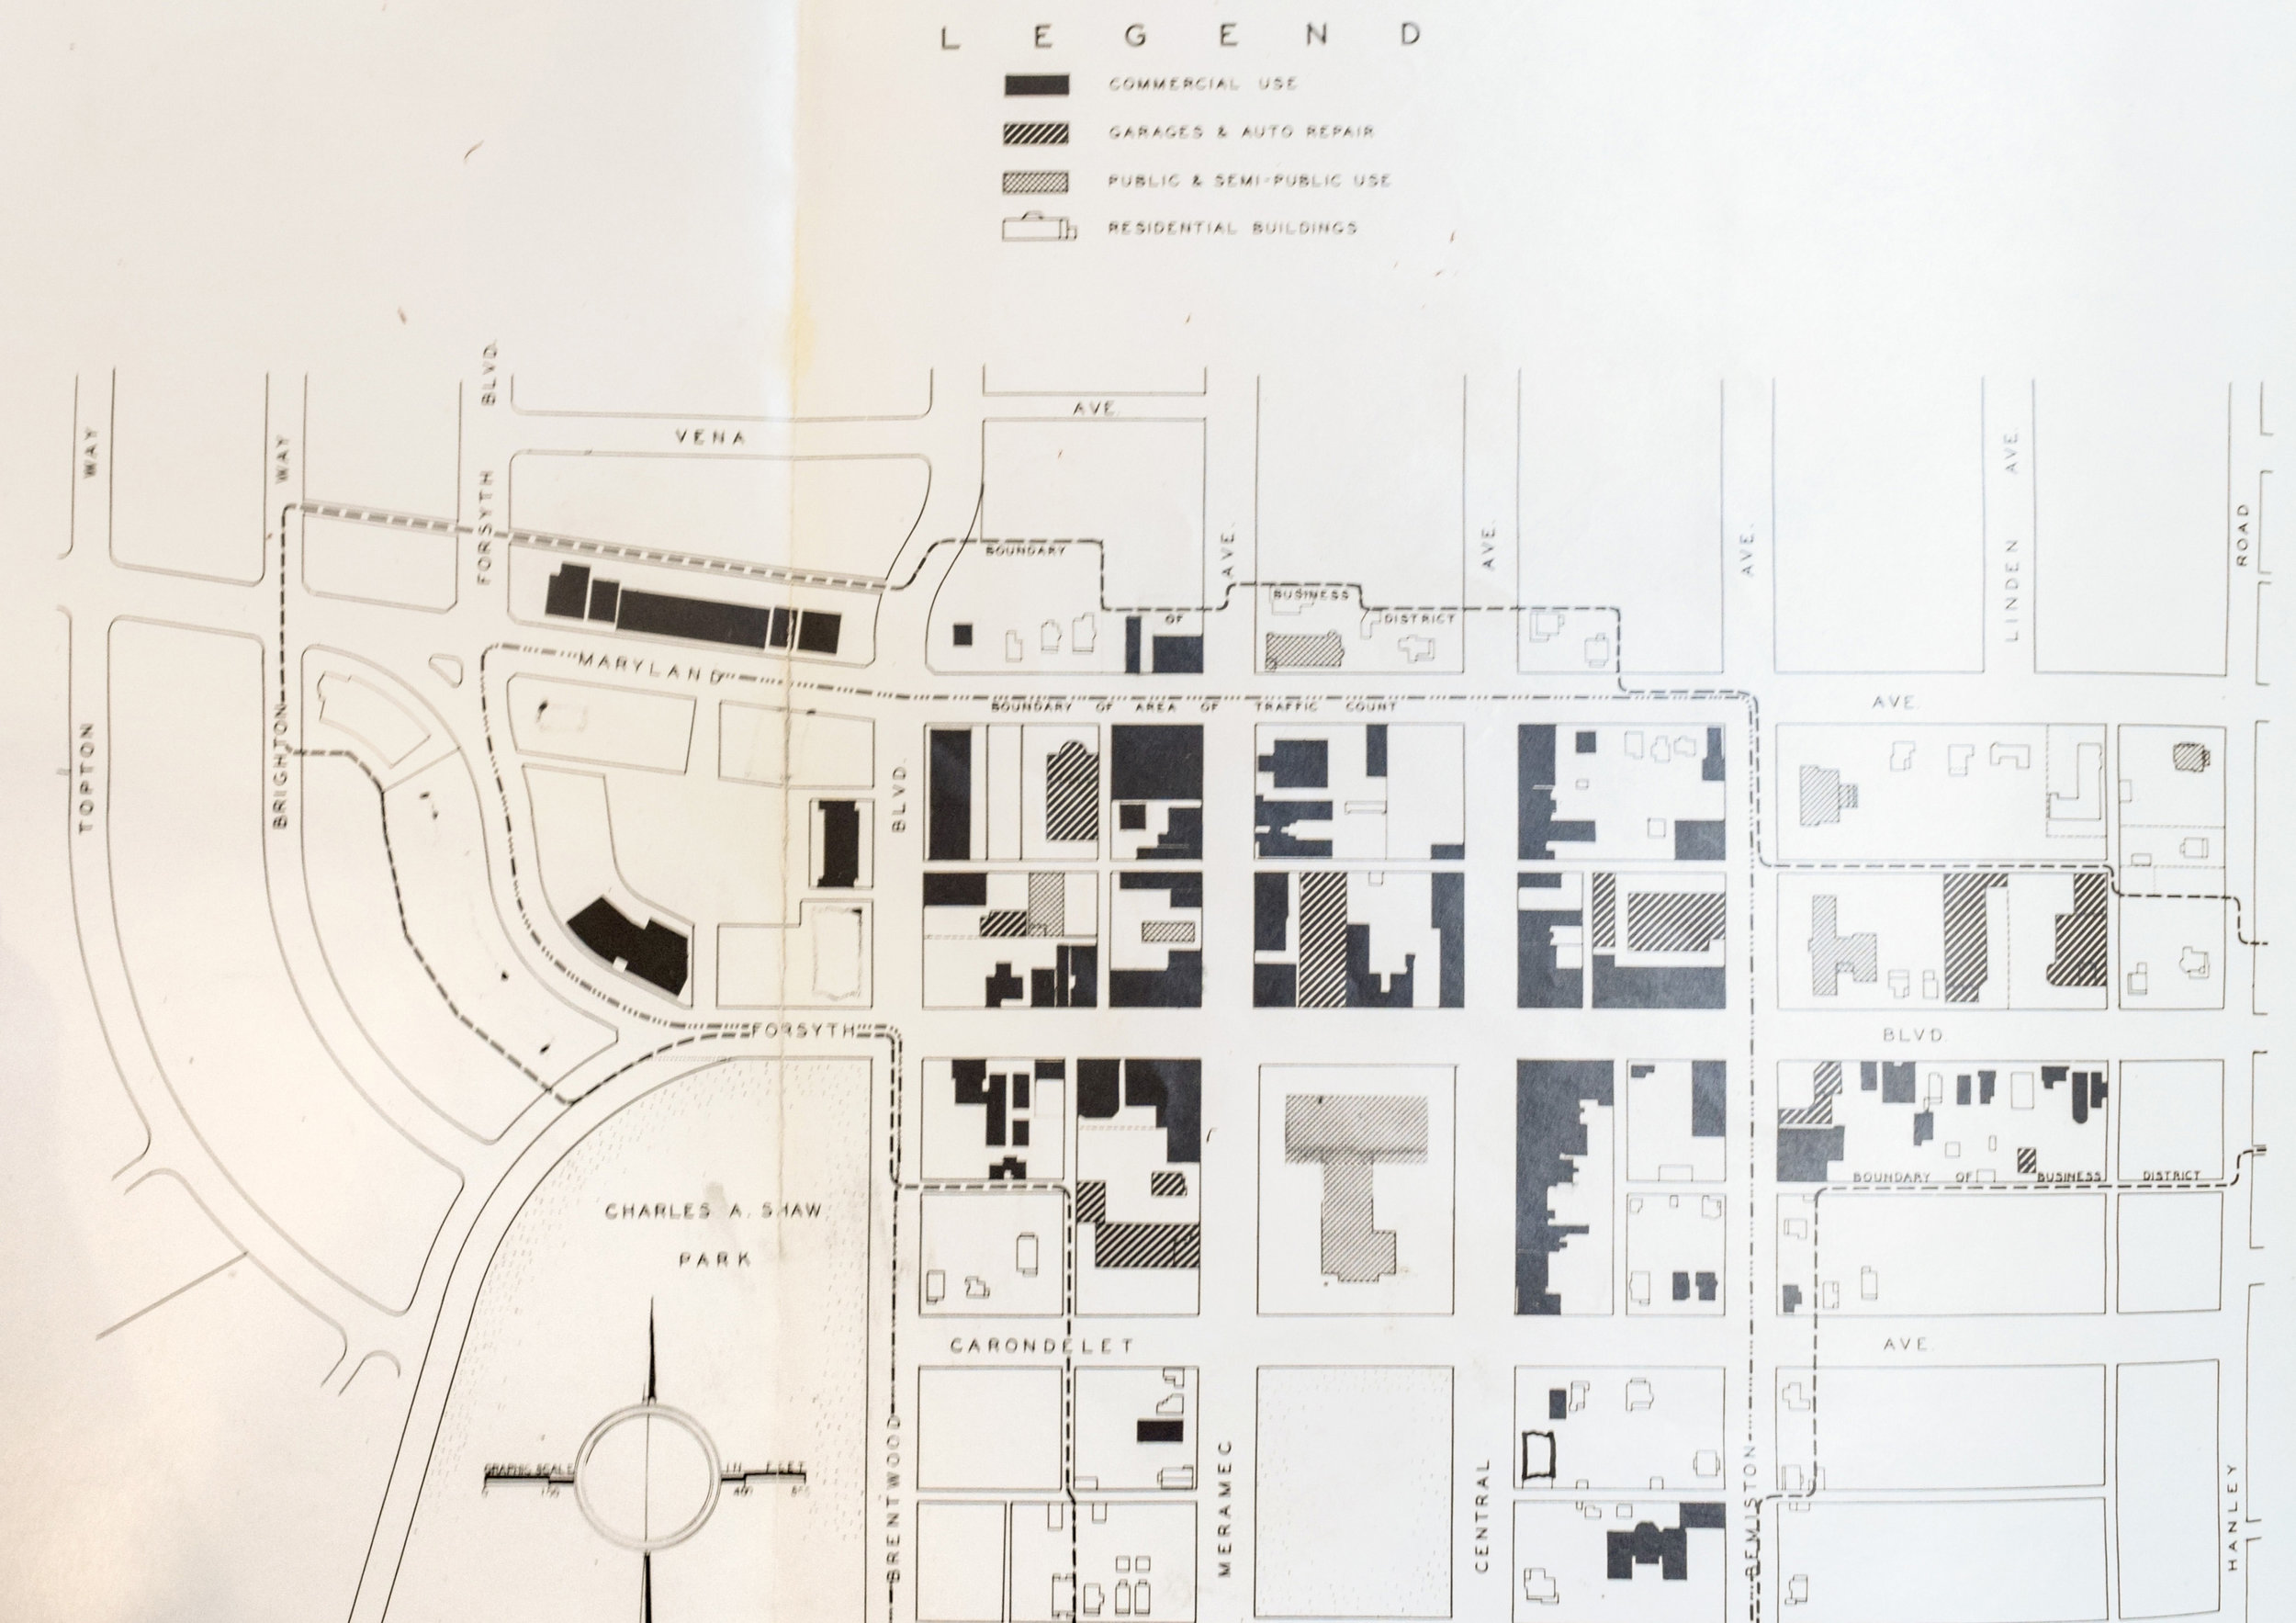 Central Business District, Existing Development,  Courtesy of Washington University Special Collections